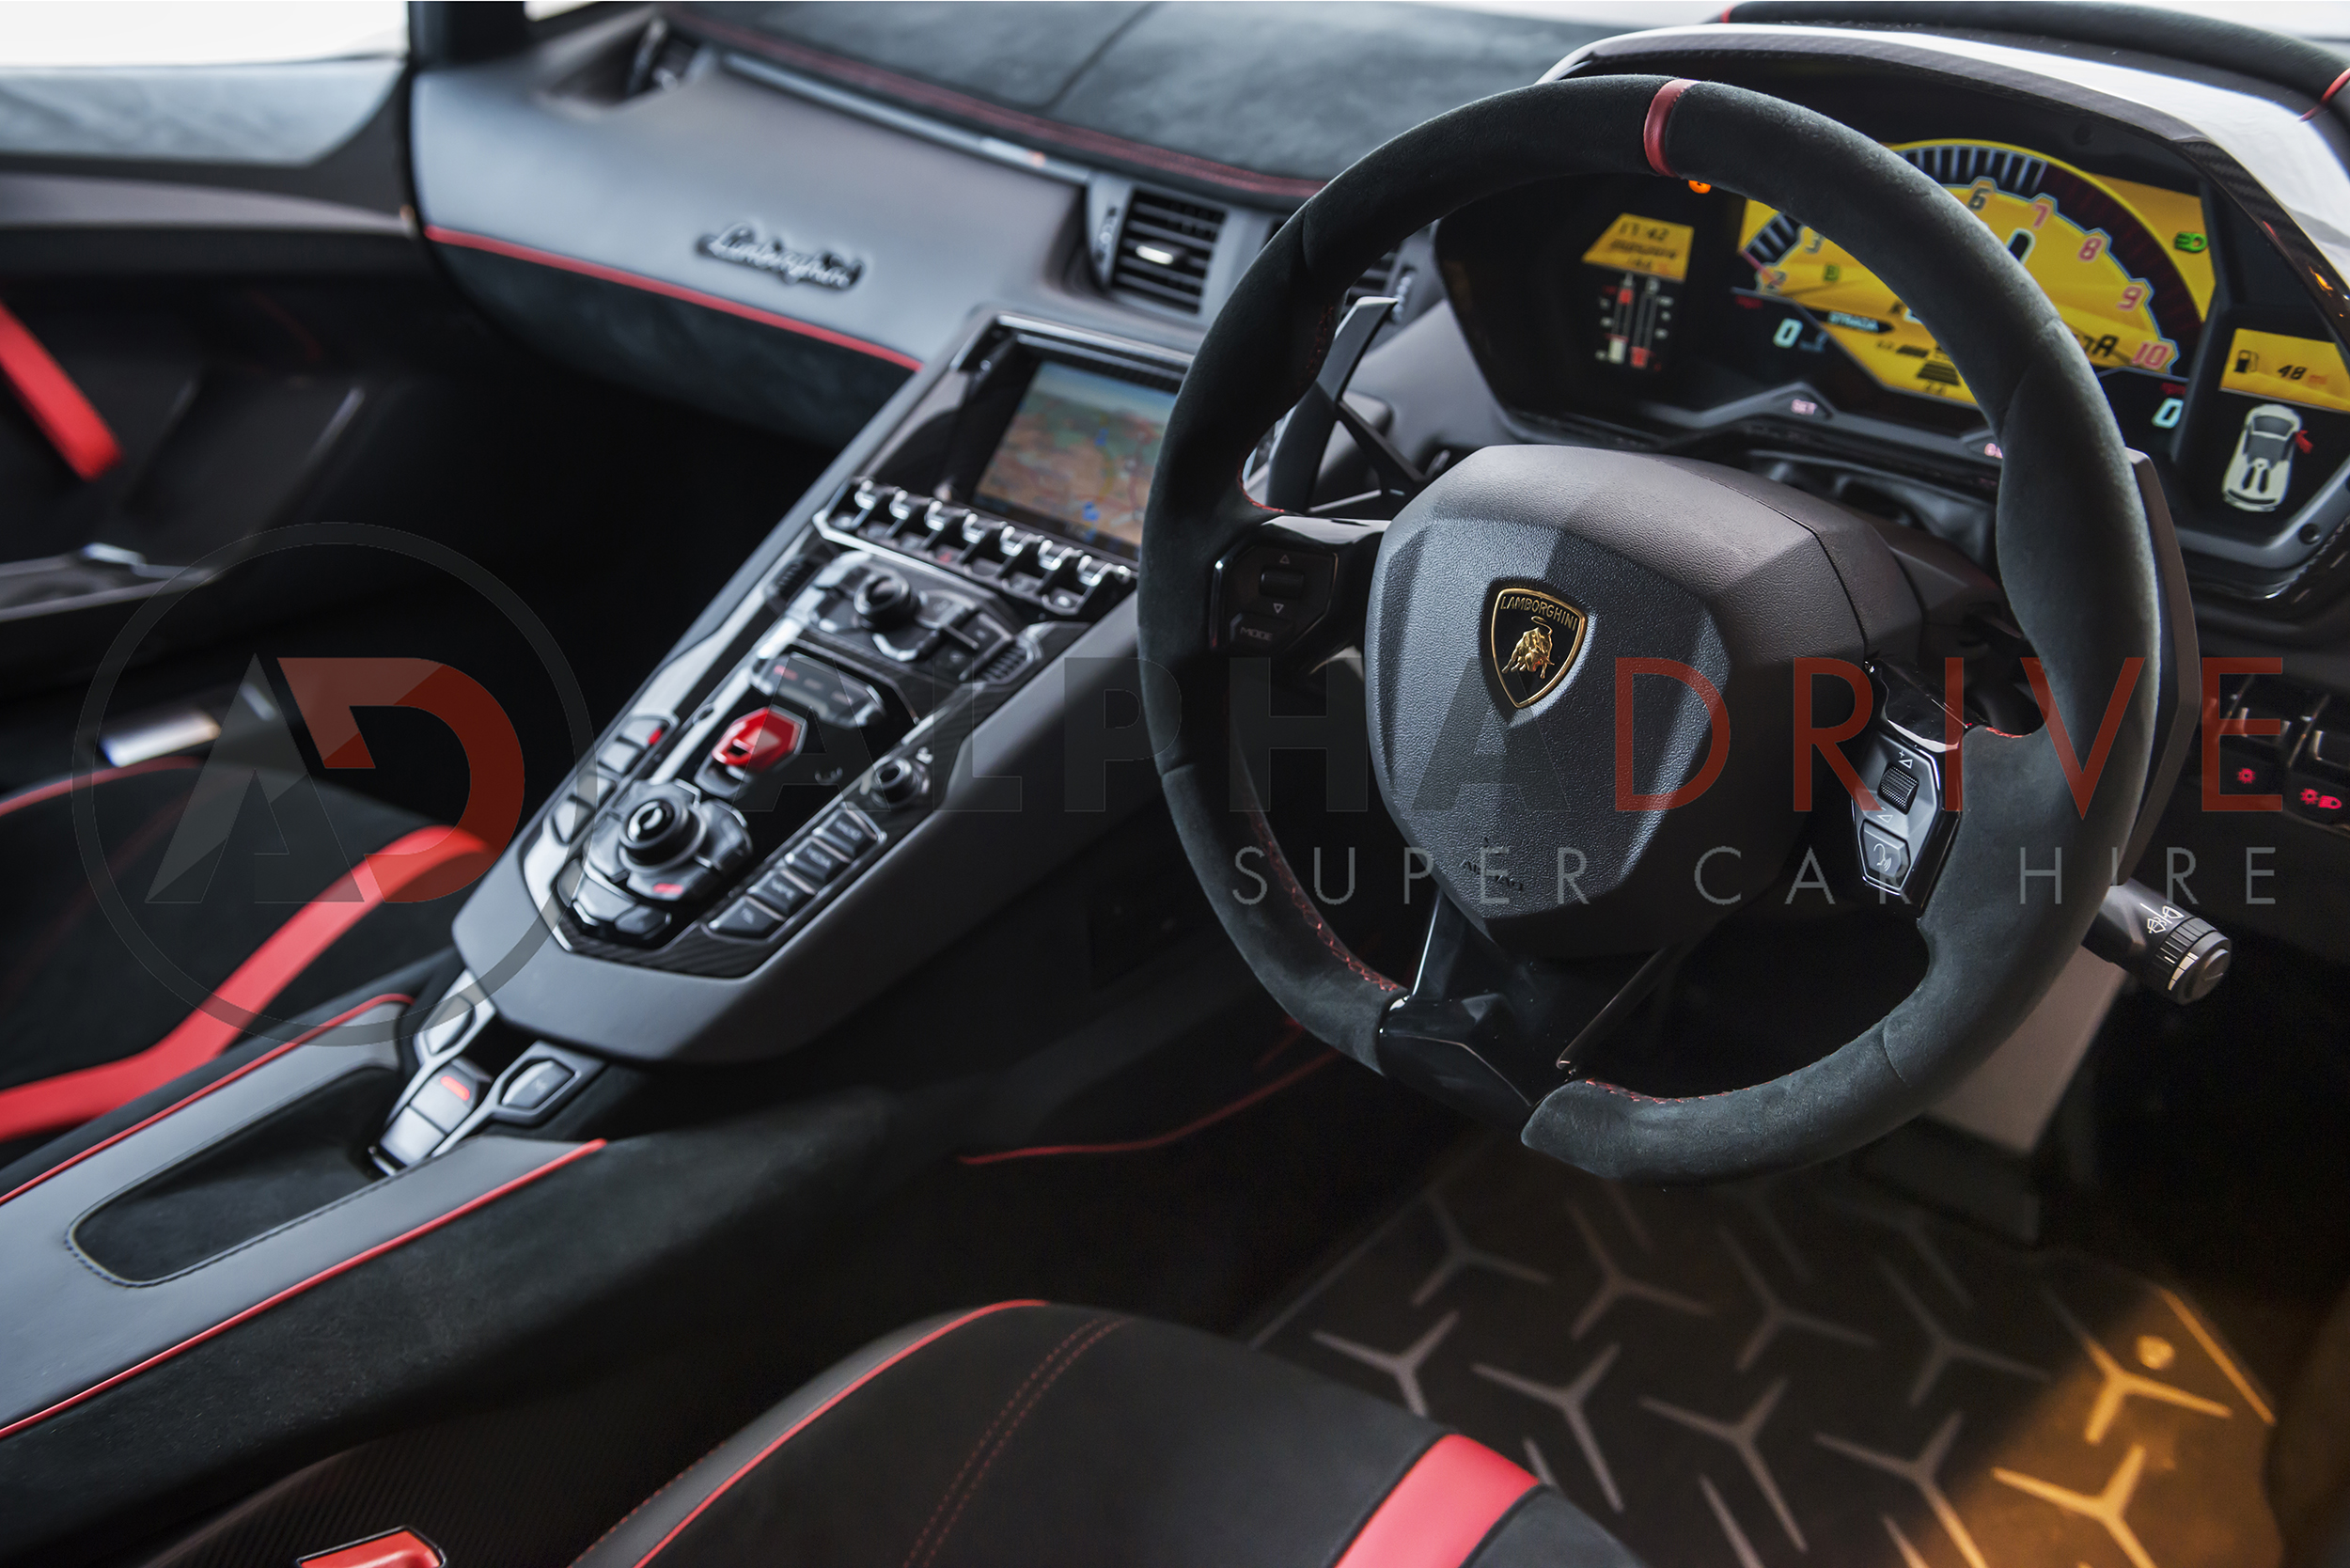 lamborghini aventador sv roadster interior alphadrive supercar hire. Black Bedroom Furniture Sets. Home Design Ideas